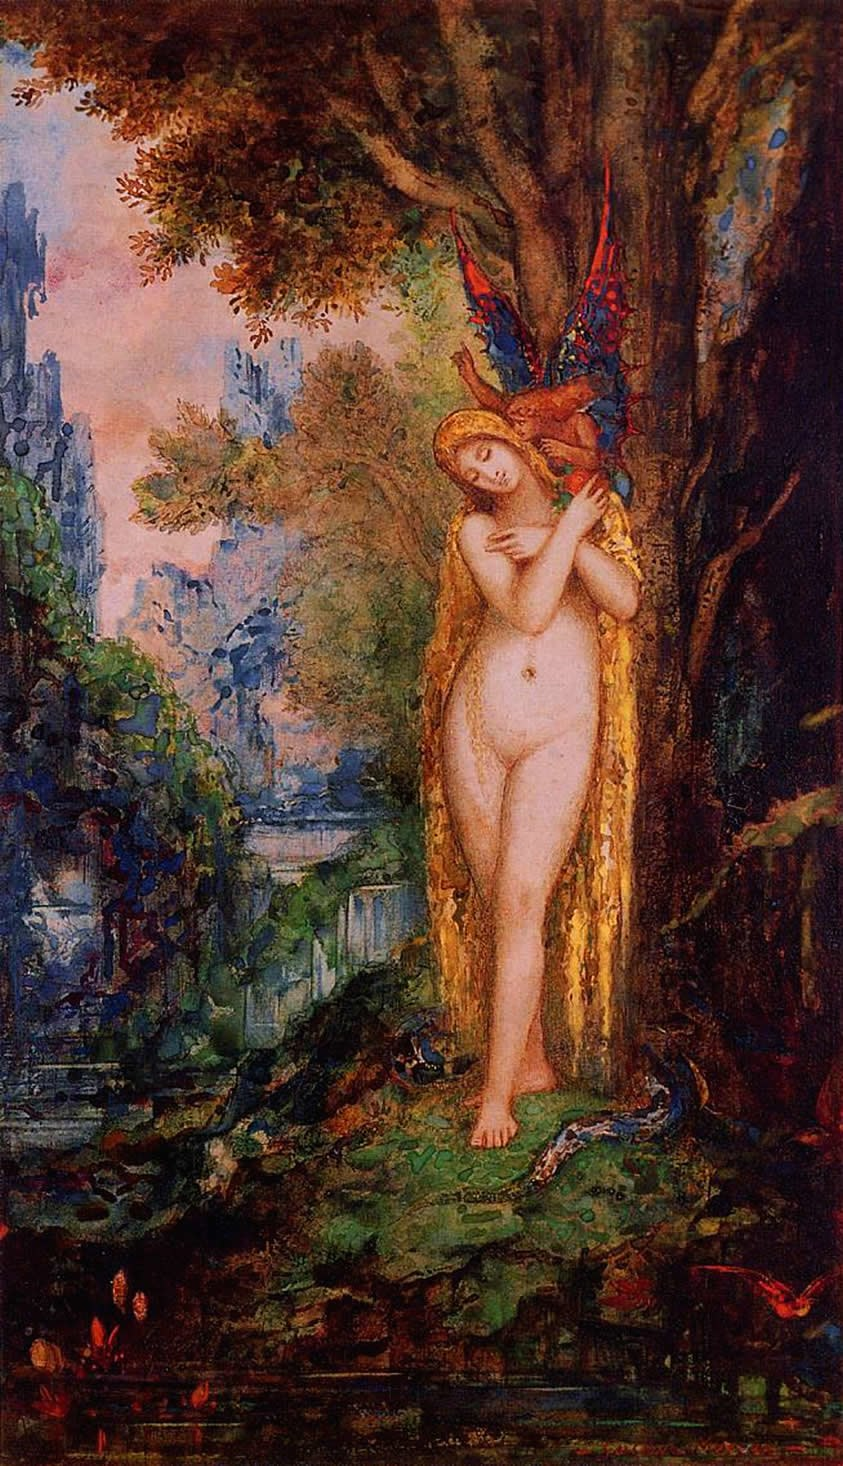 Eve by Gustave Moreau (1885)